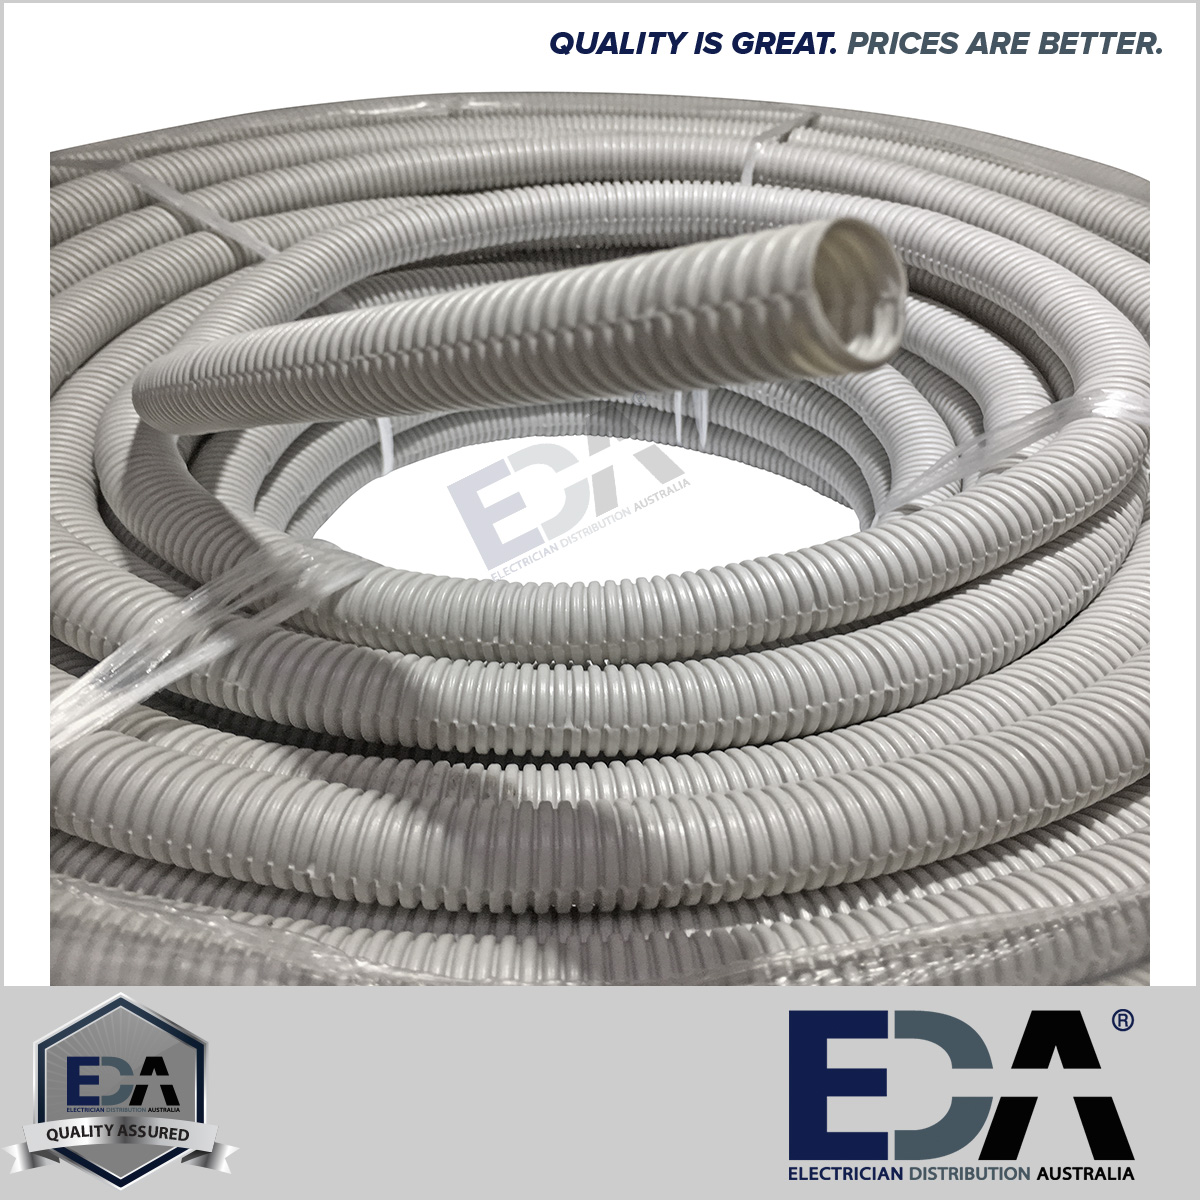 Corrugated Conduit 20mm X 20m Metre Roll Grey Electrical Eda Online Wire 100 Quality Assured Gear Fully Tested To Australian Standards As 3123 5 Year Warranty All Products